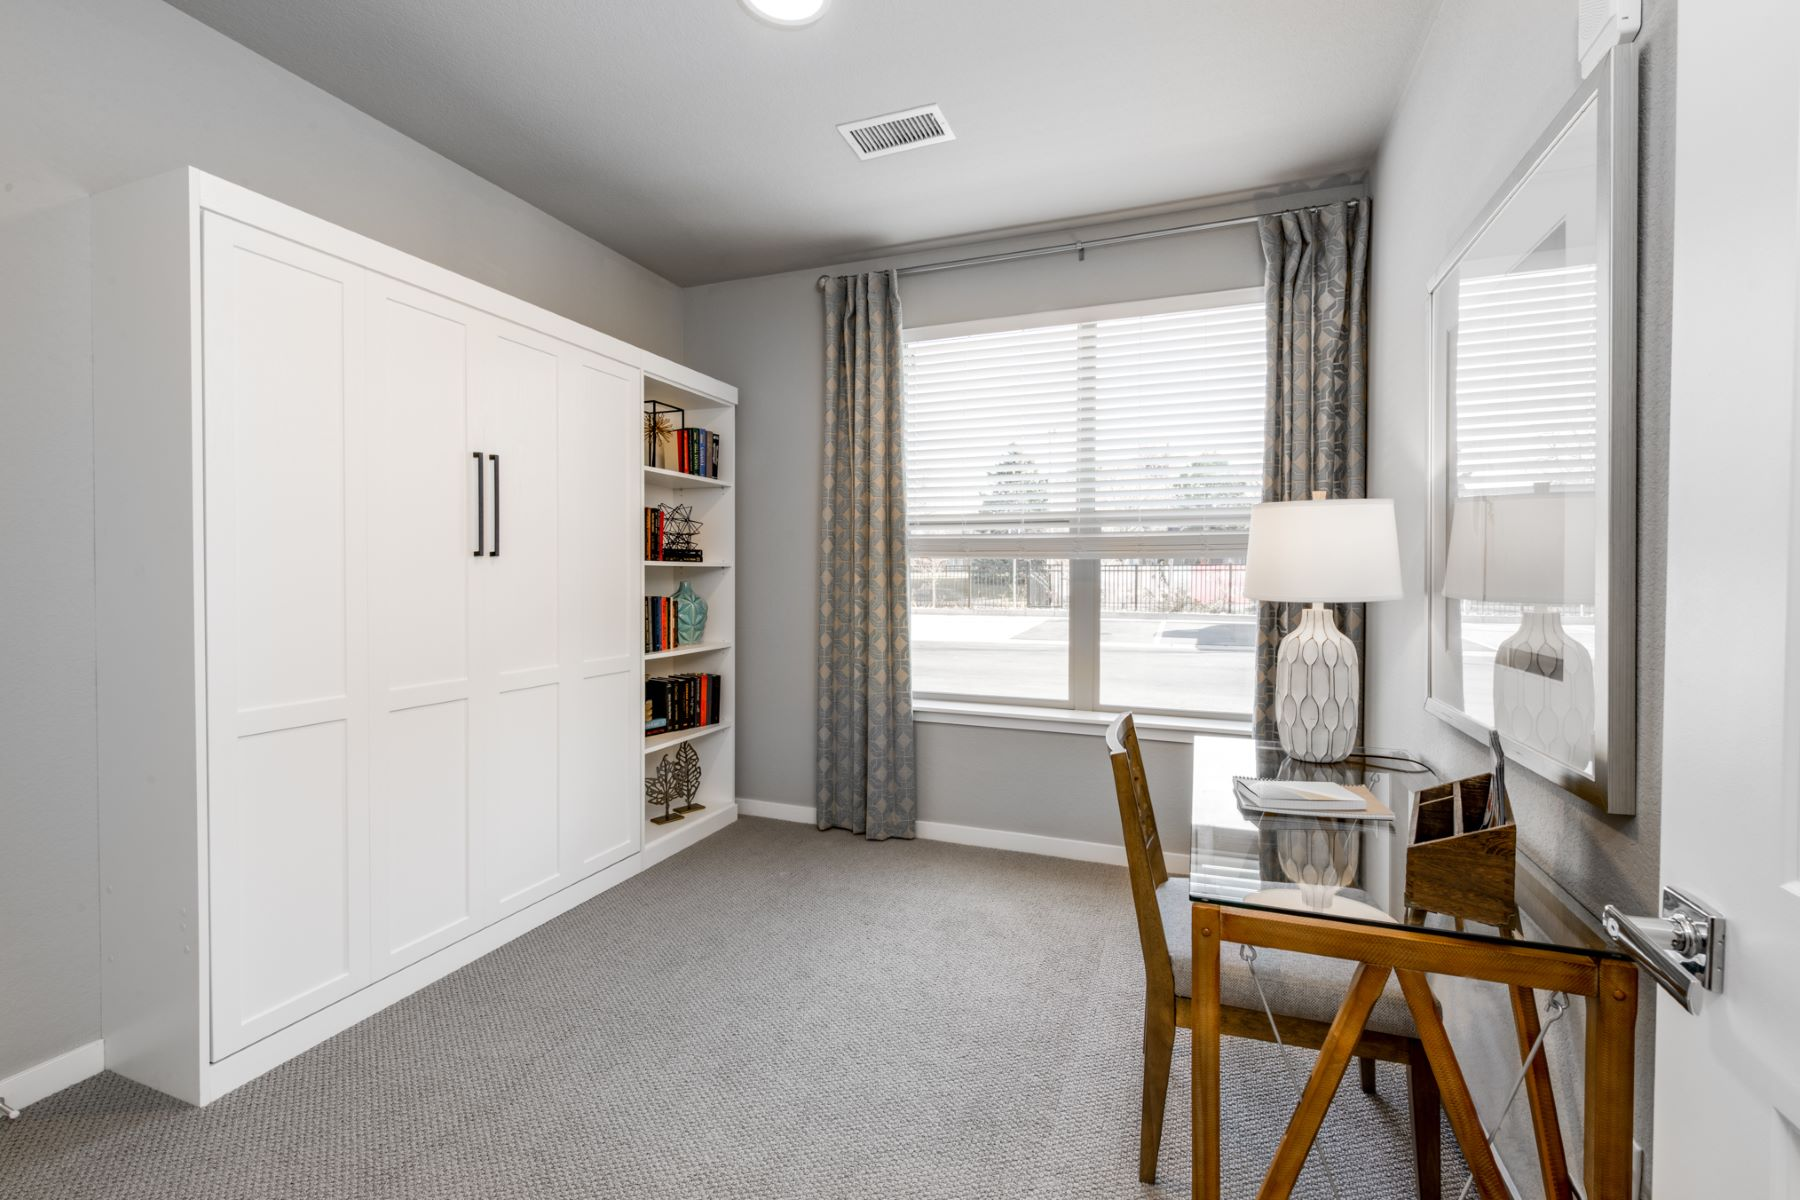 Additional photo for property listing at 155 South Monaco Parkway #306 155 S Monaco Pkwy #306 Denver, Colorado 80224 United States